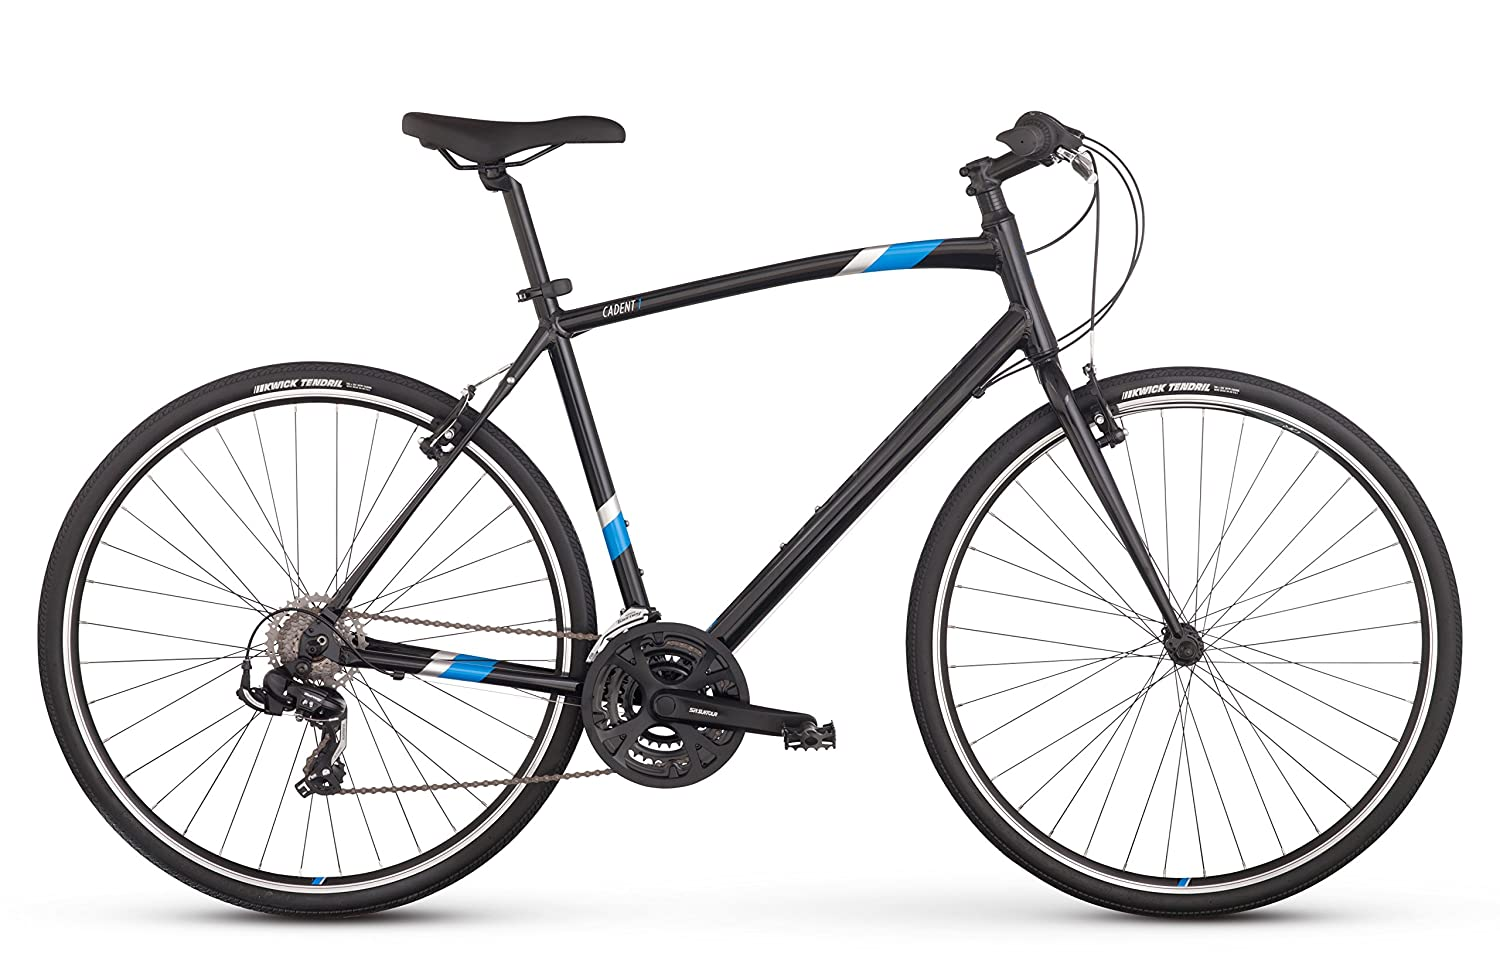 Image result for Raleigh Cadent 1 Urban Fitness Bike